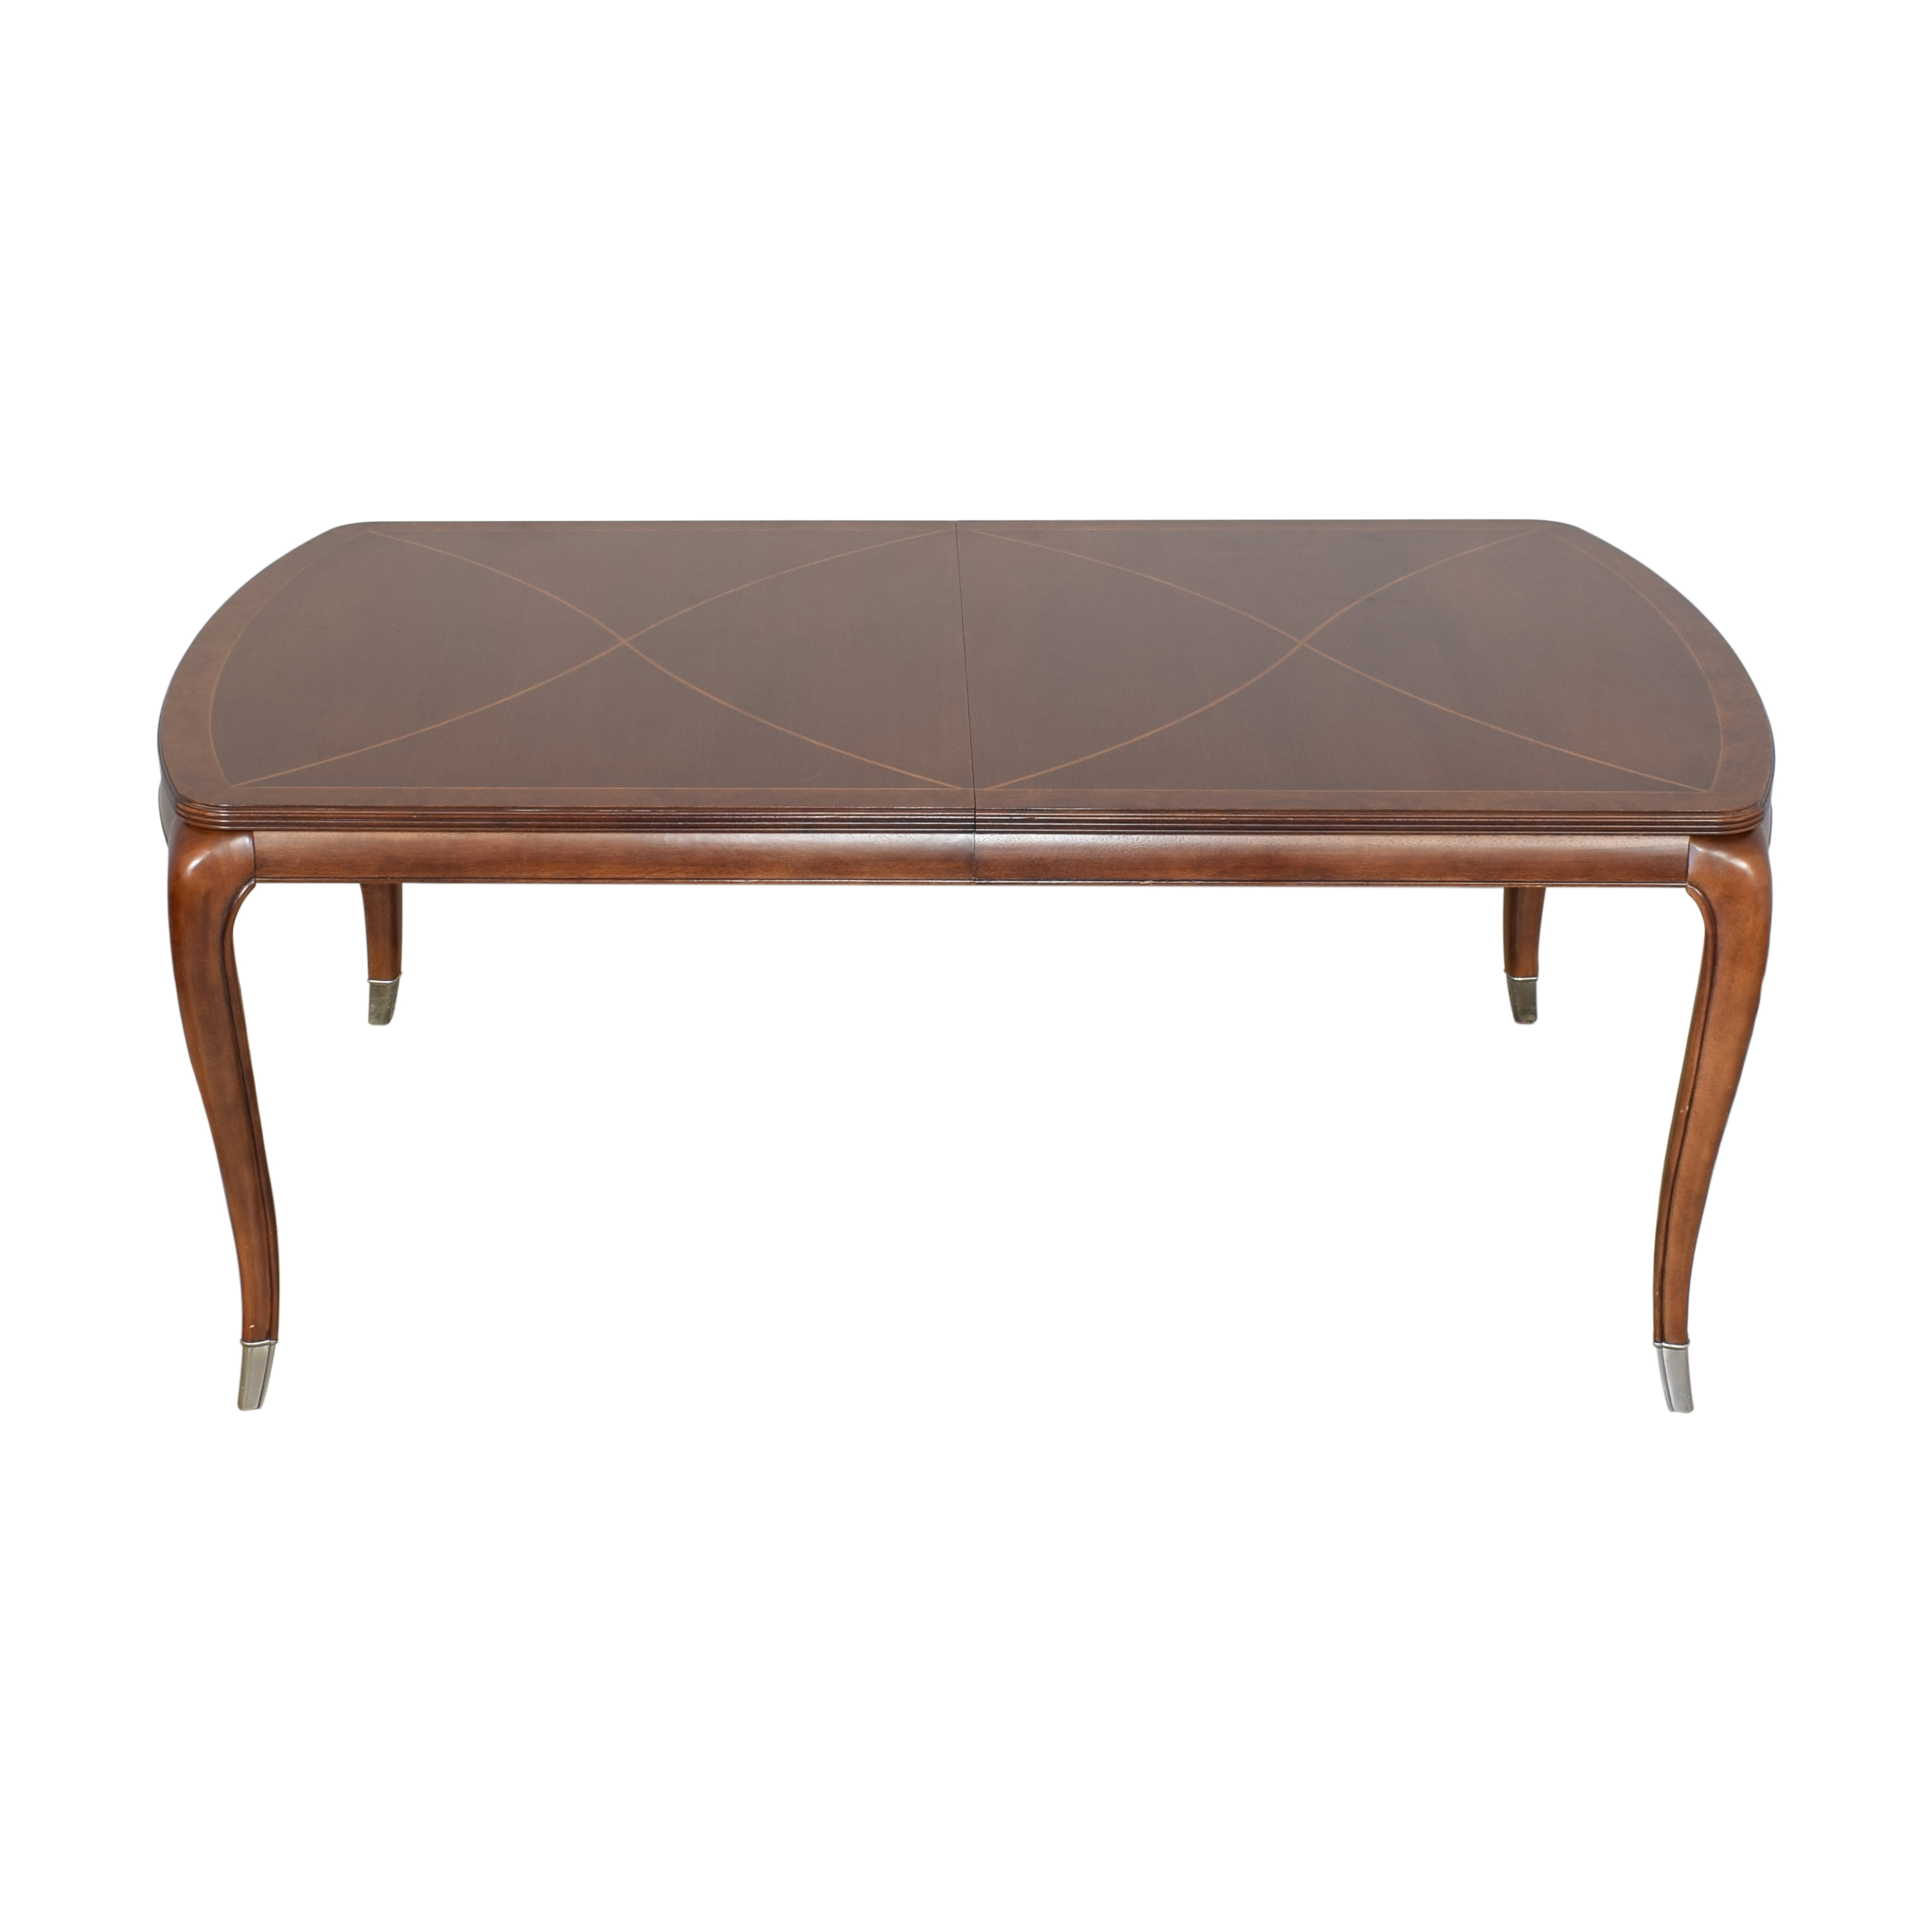 Thomasville Thomasville Bogart Collection Extendable Dining Table ma